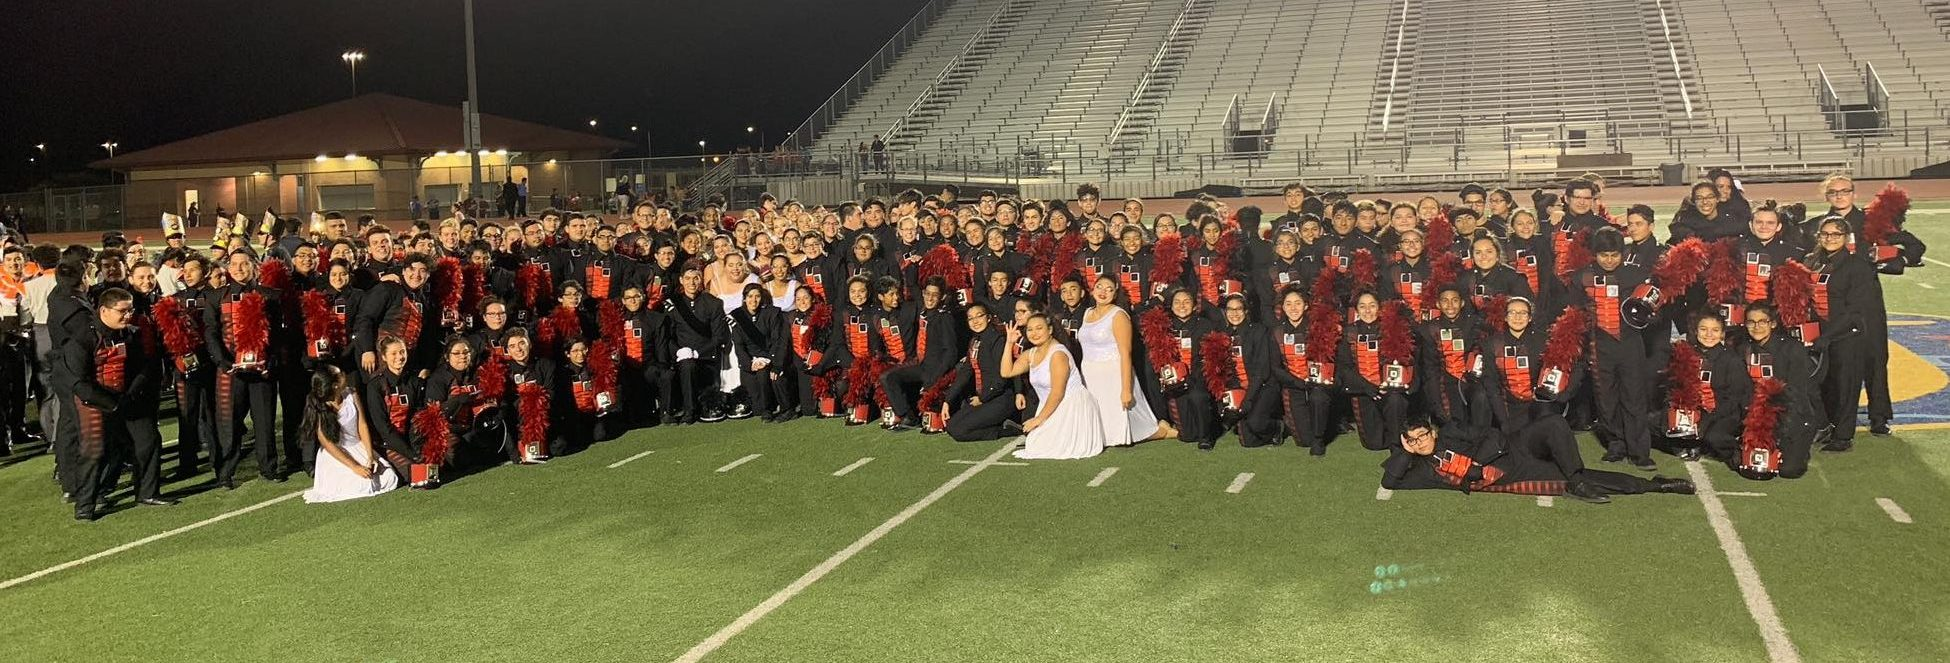 Big Red Cardinal Band advances to UIL State Marching Contest